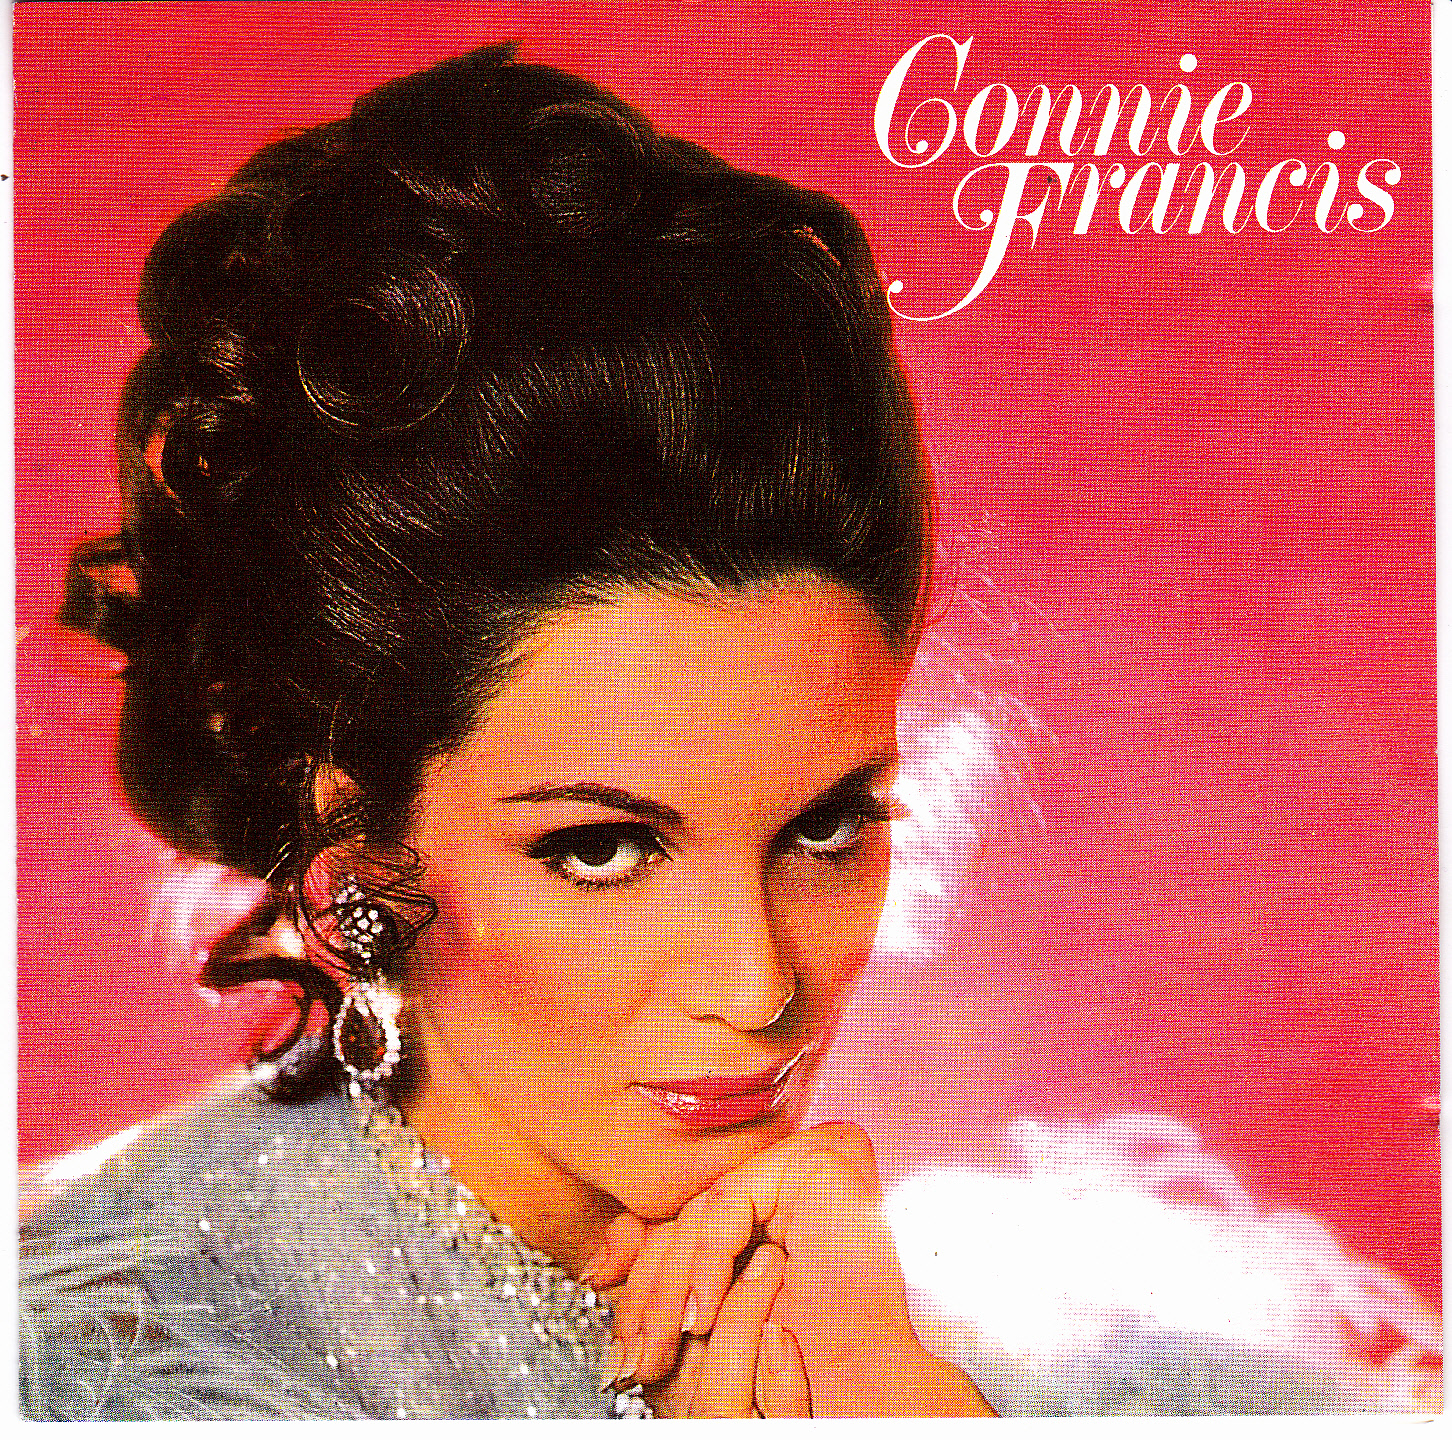 Mijas connie francis greatest hits 1988 for 1988 hit songs